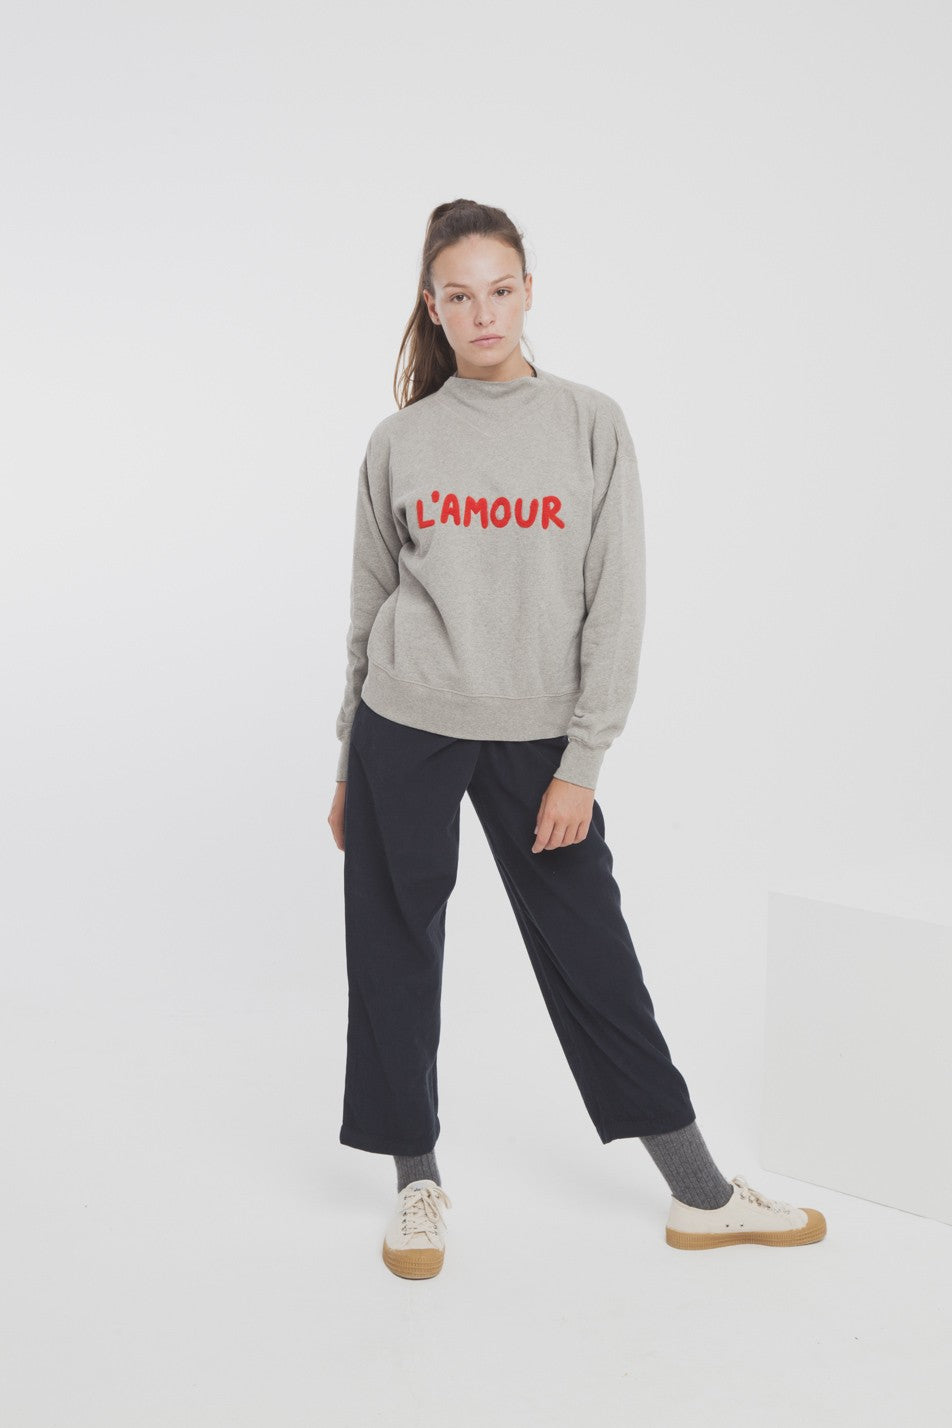 Thinking Mu - Sweat gris en coton bio l'amour